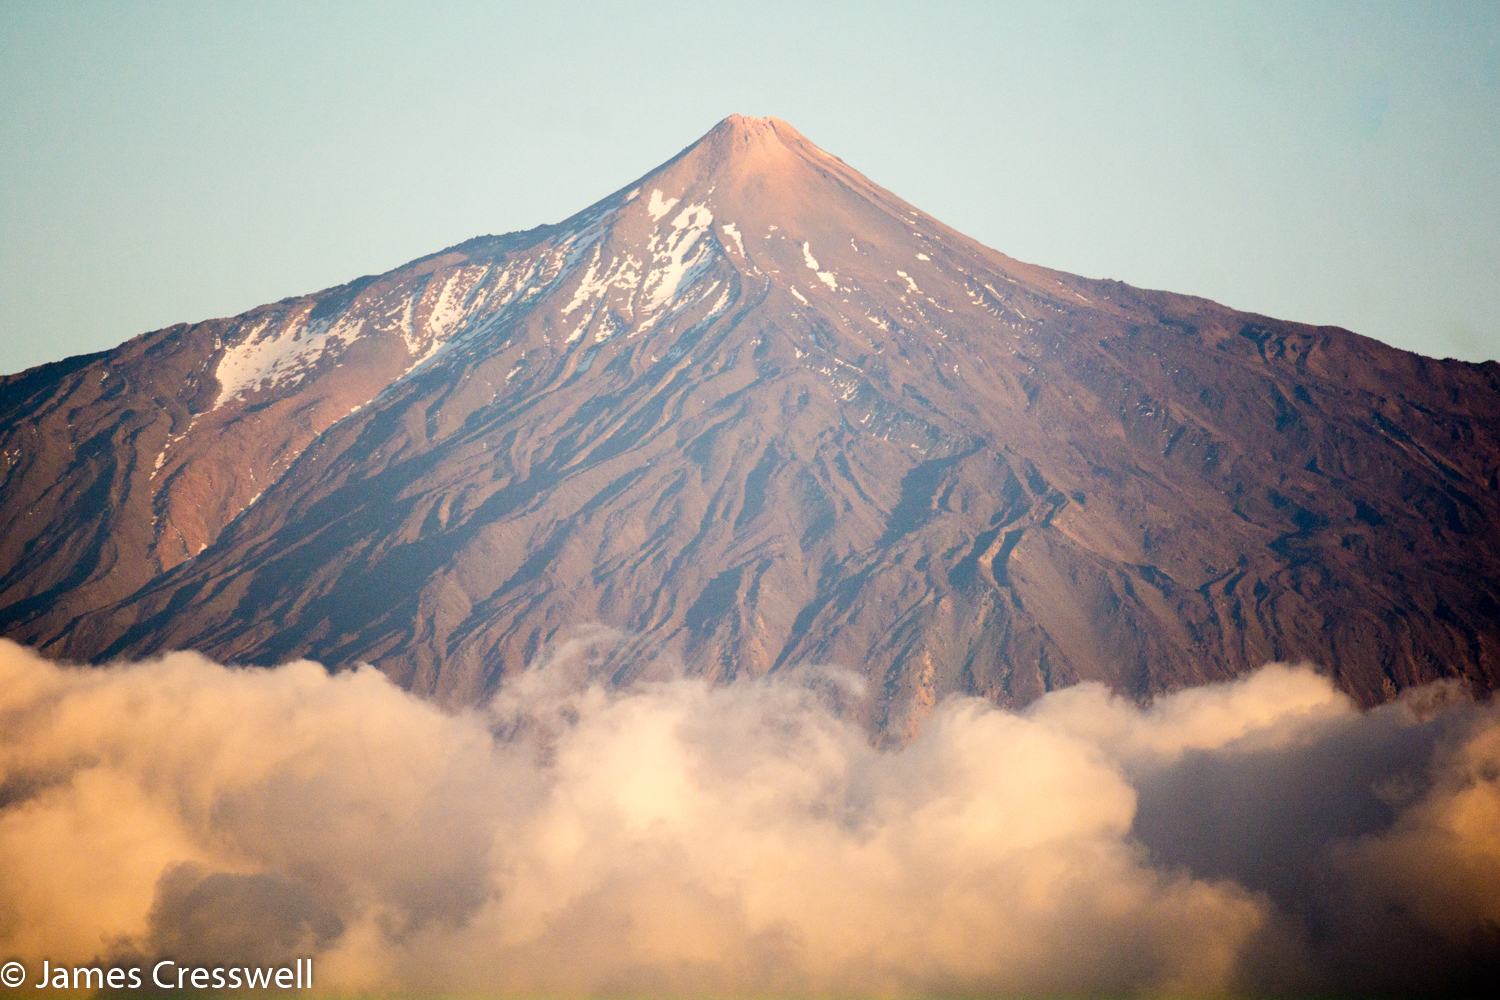 A photograph Teide volcano taken on a GeoWorld Travel Canary Islands geology trip, tour and holiday